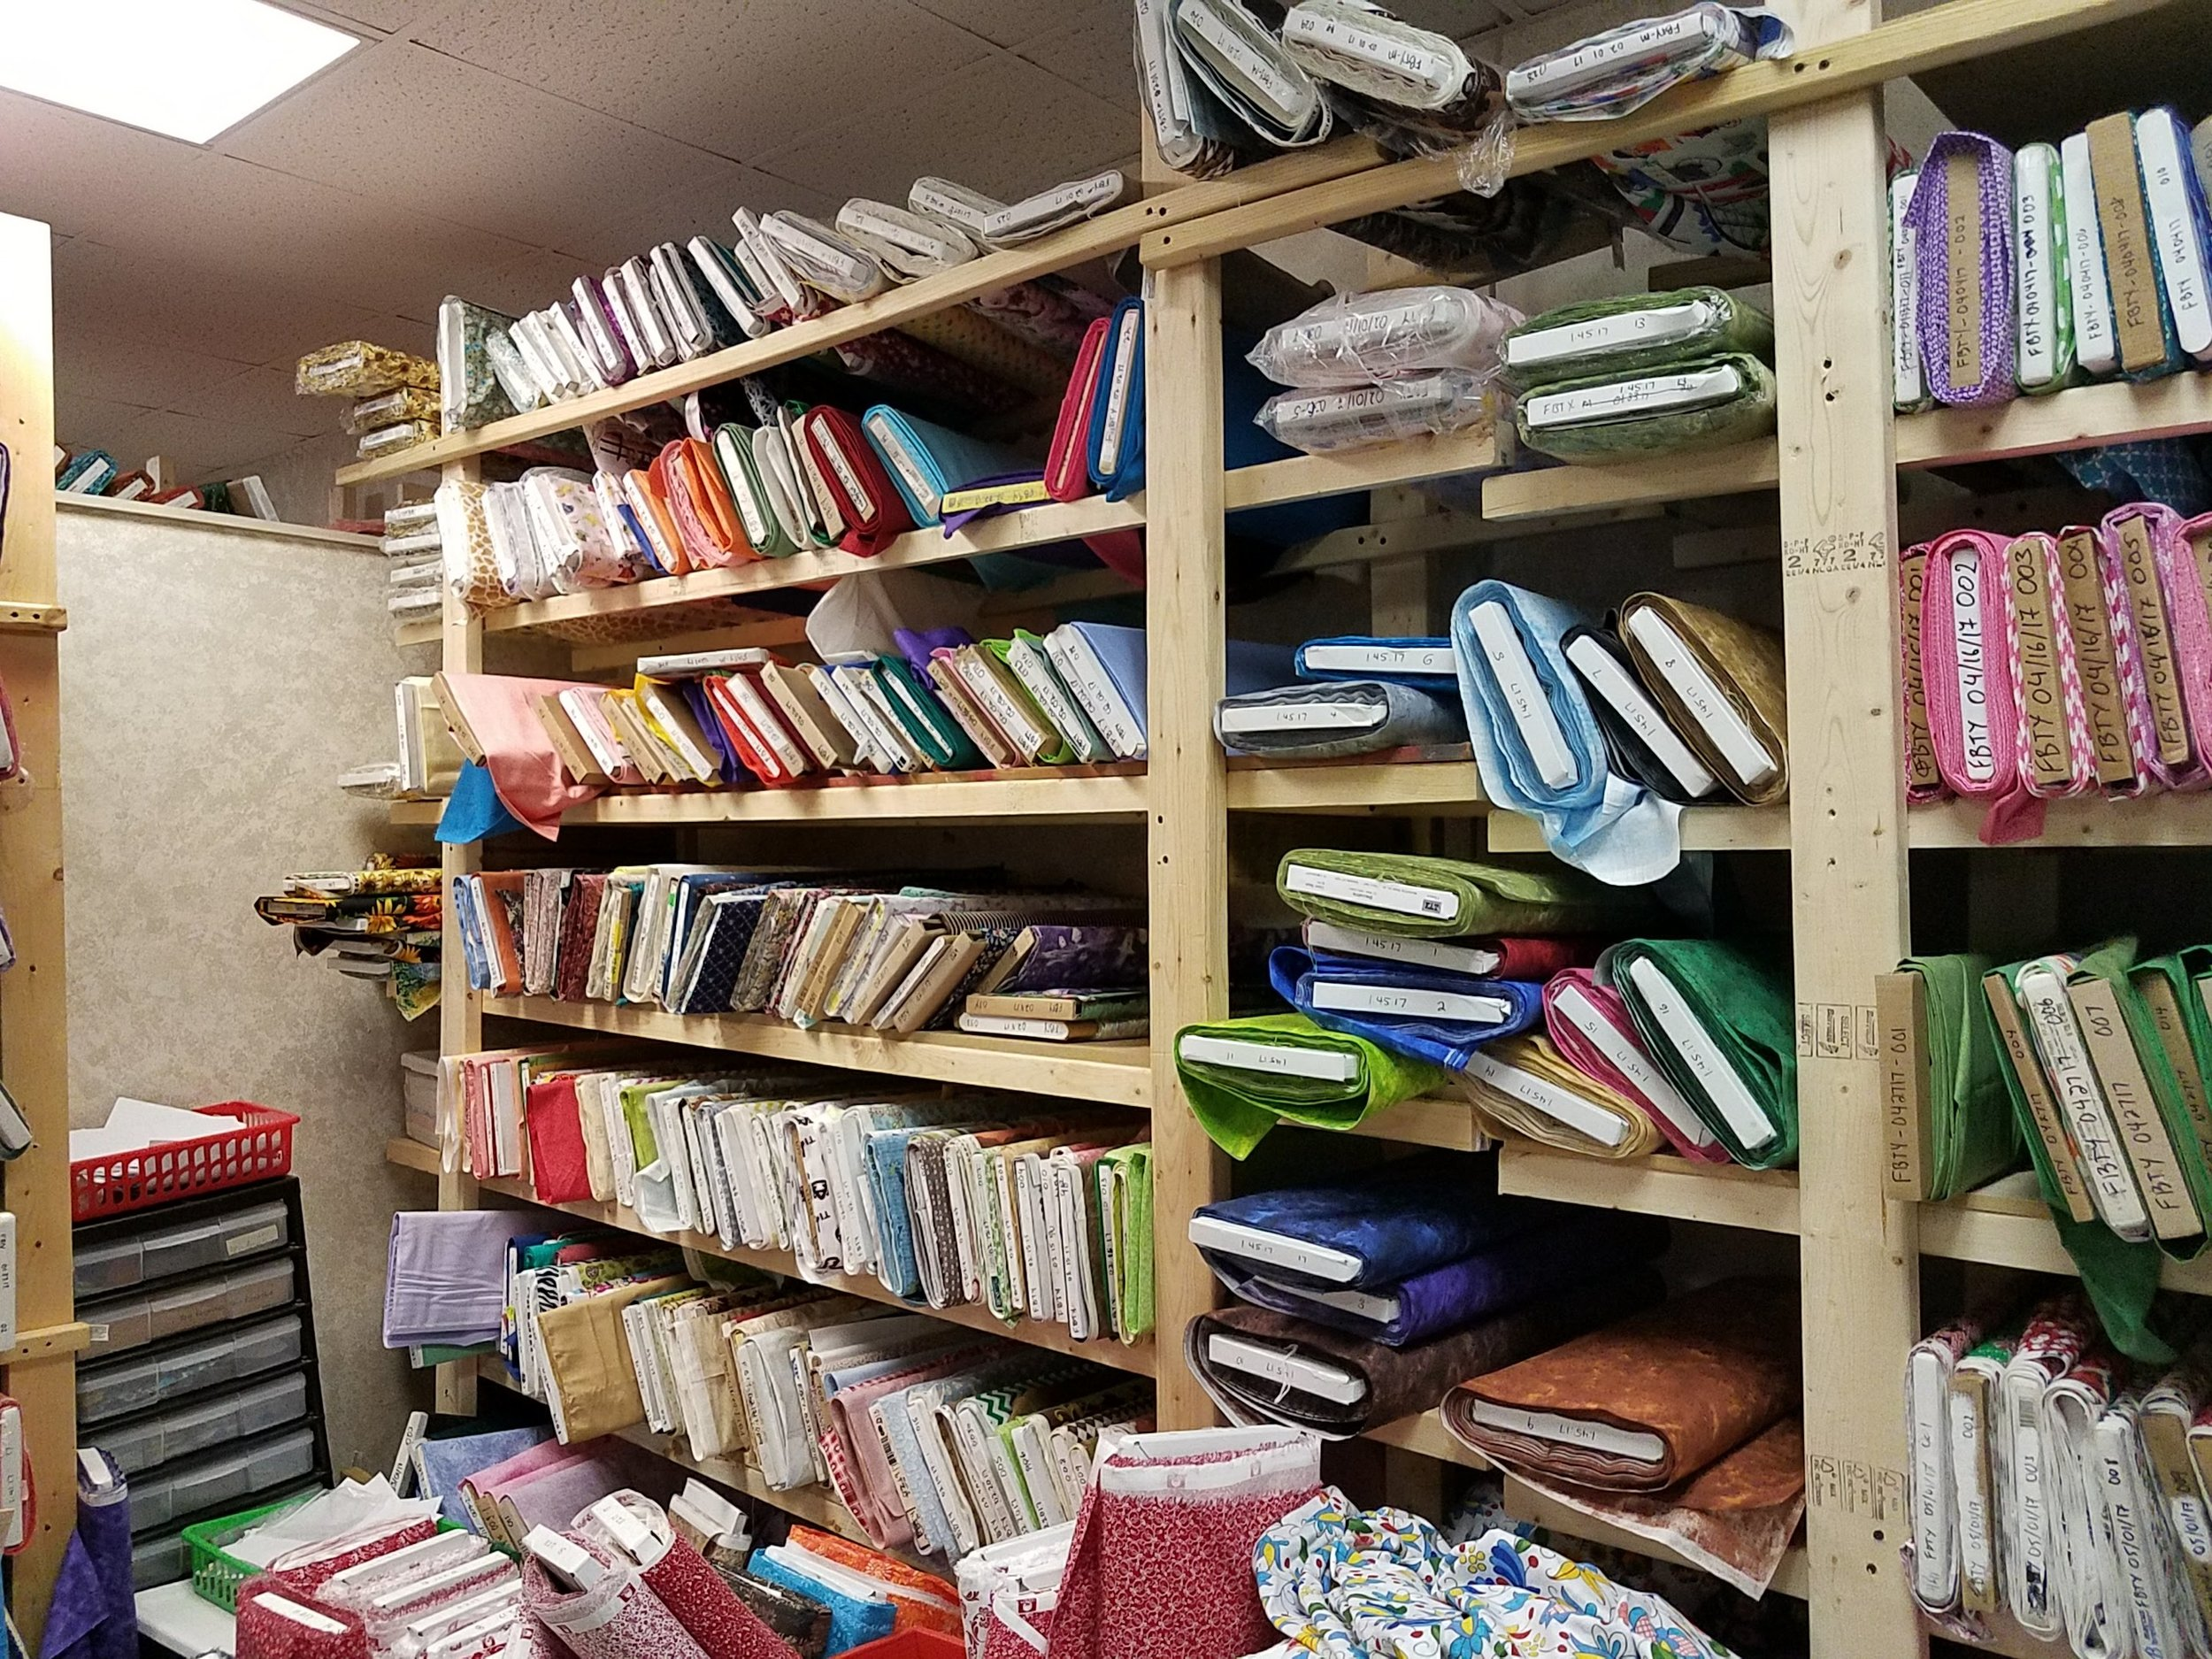 All but the impossible to reach units were filled to the gills. - When we weren't putting up fabric, we were cutting it up into half yard and fat quarter packs as fast we could, but found ourselves having to move tubs of fabric out of the way continuously, in order to be able to reach the shelves we needed.